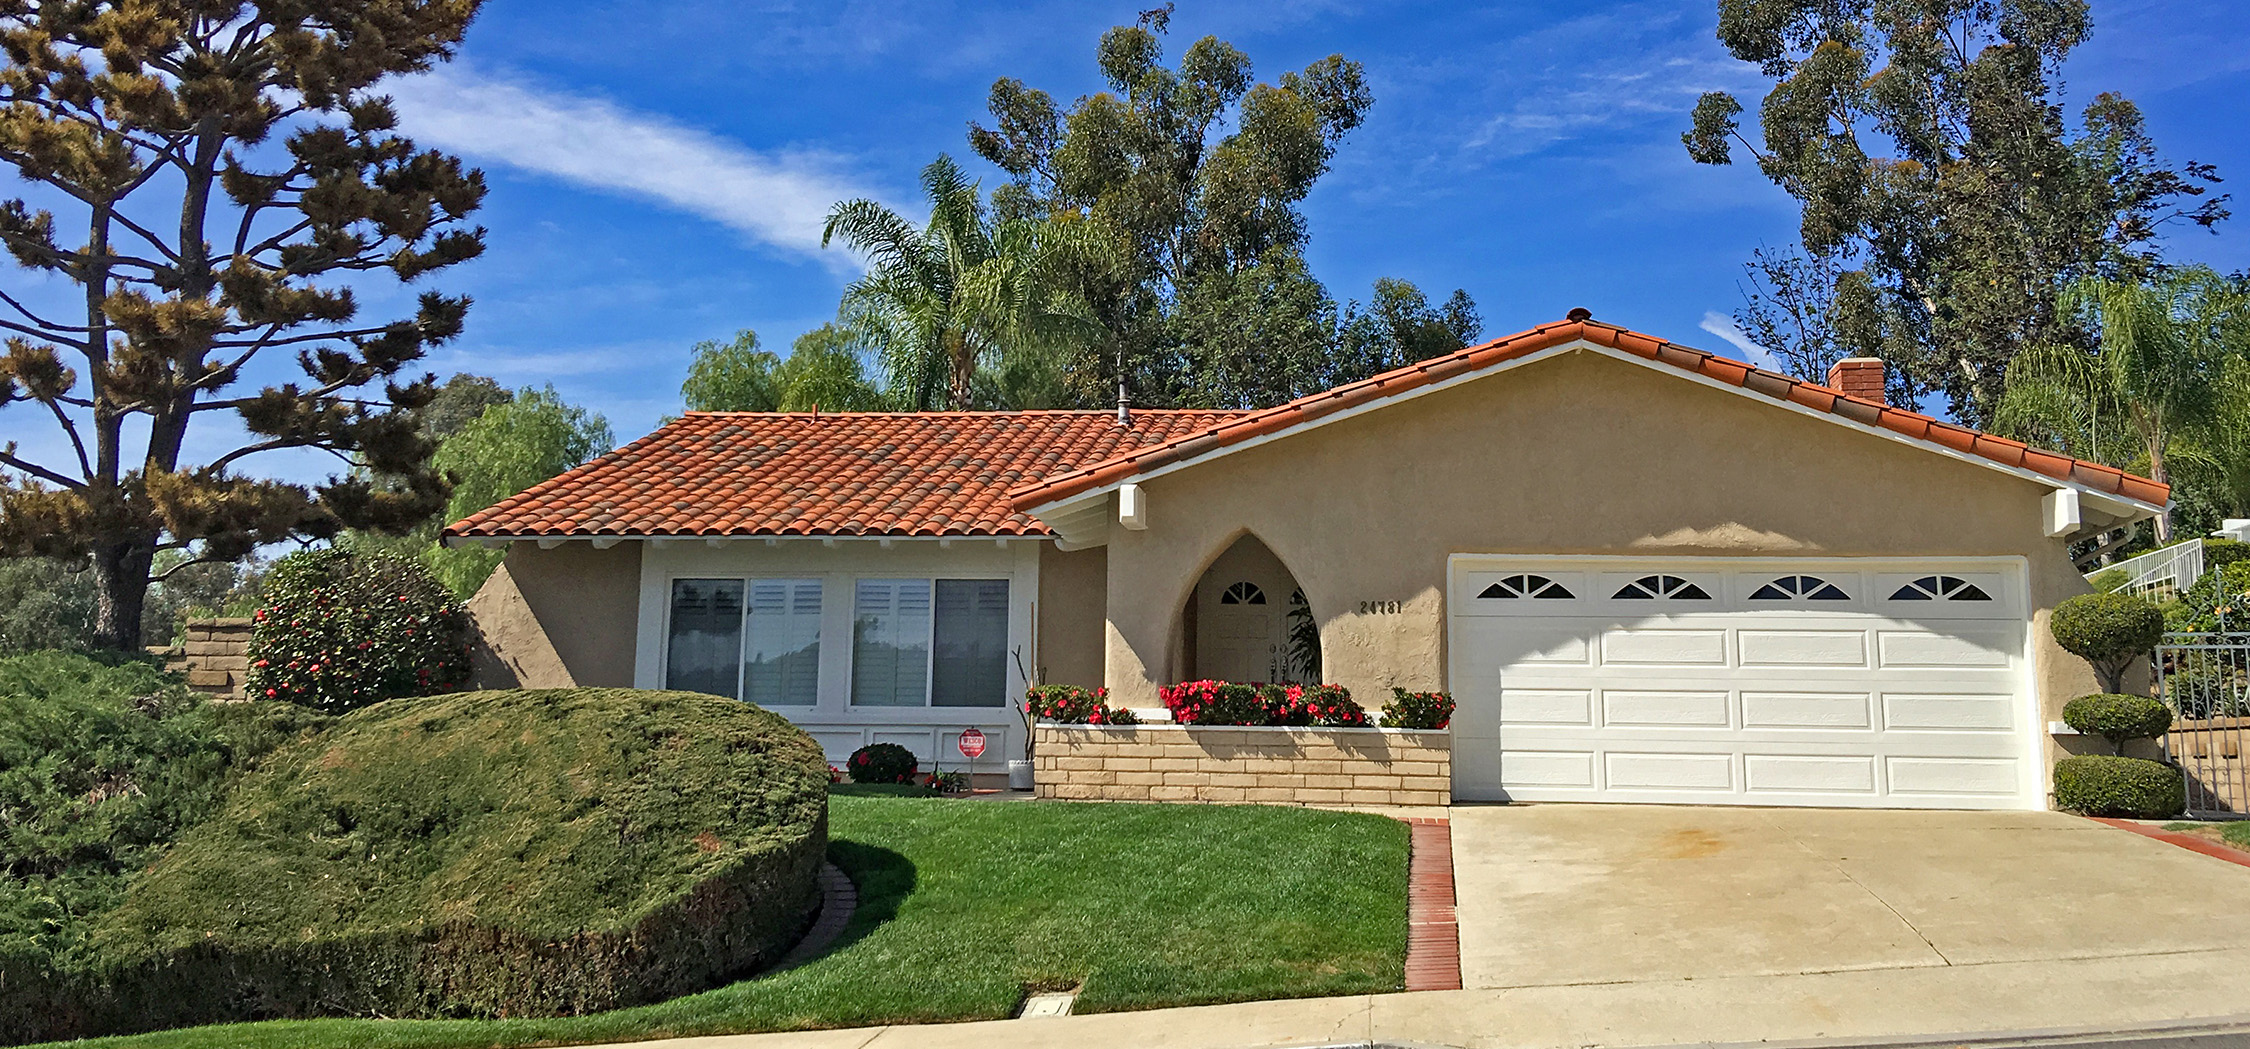 Madrid Homes for Sale Mission Viejo Just Listed